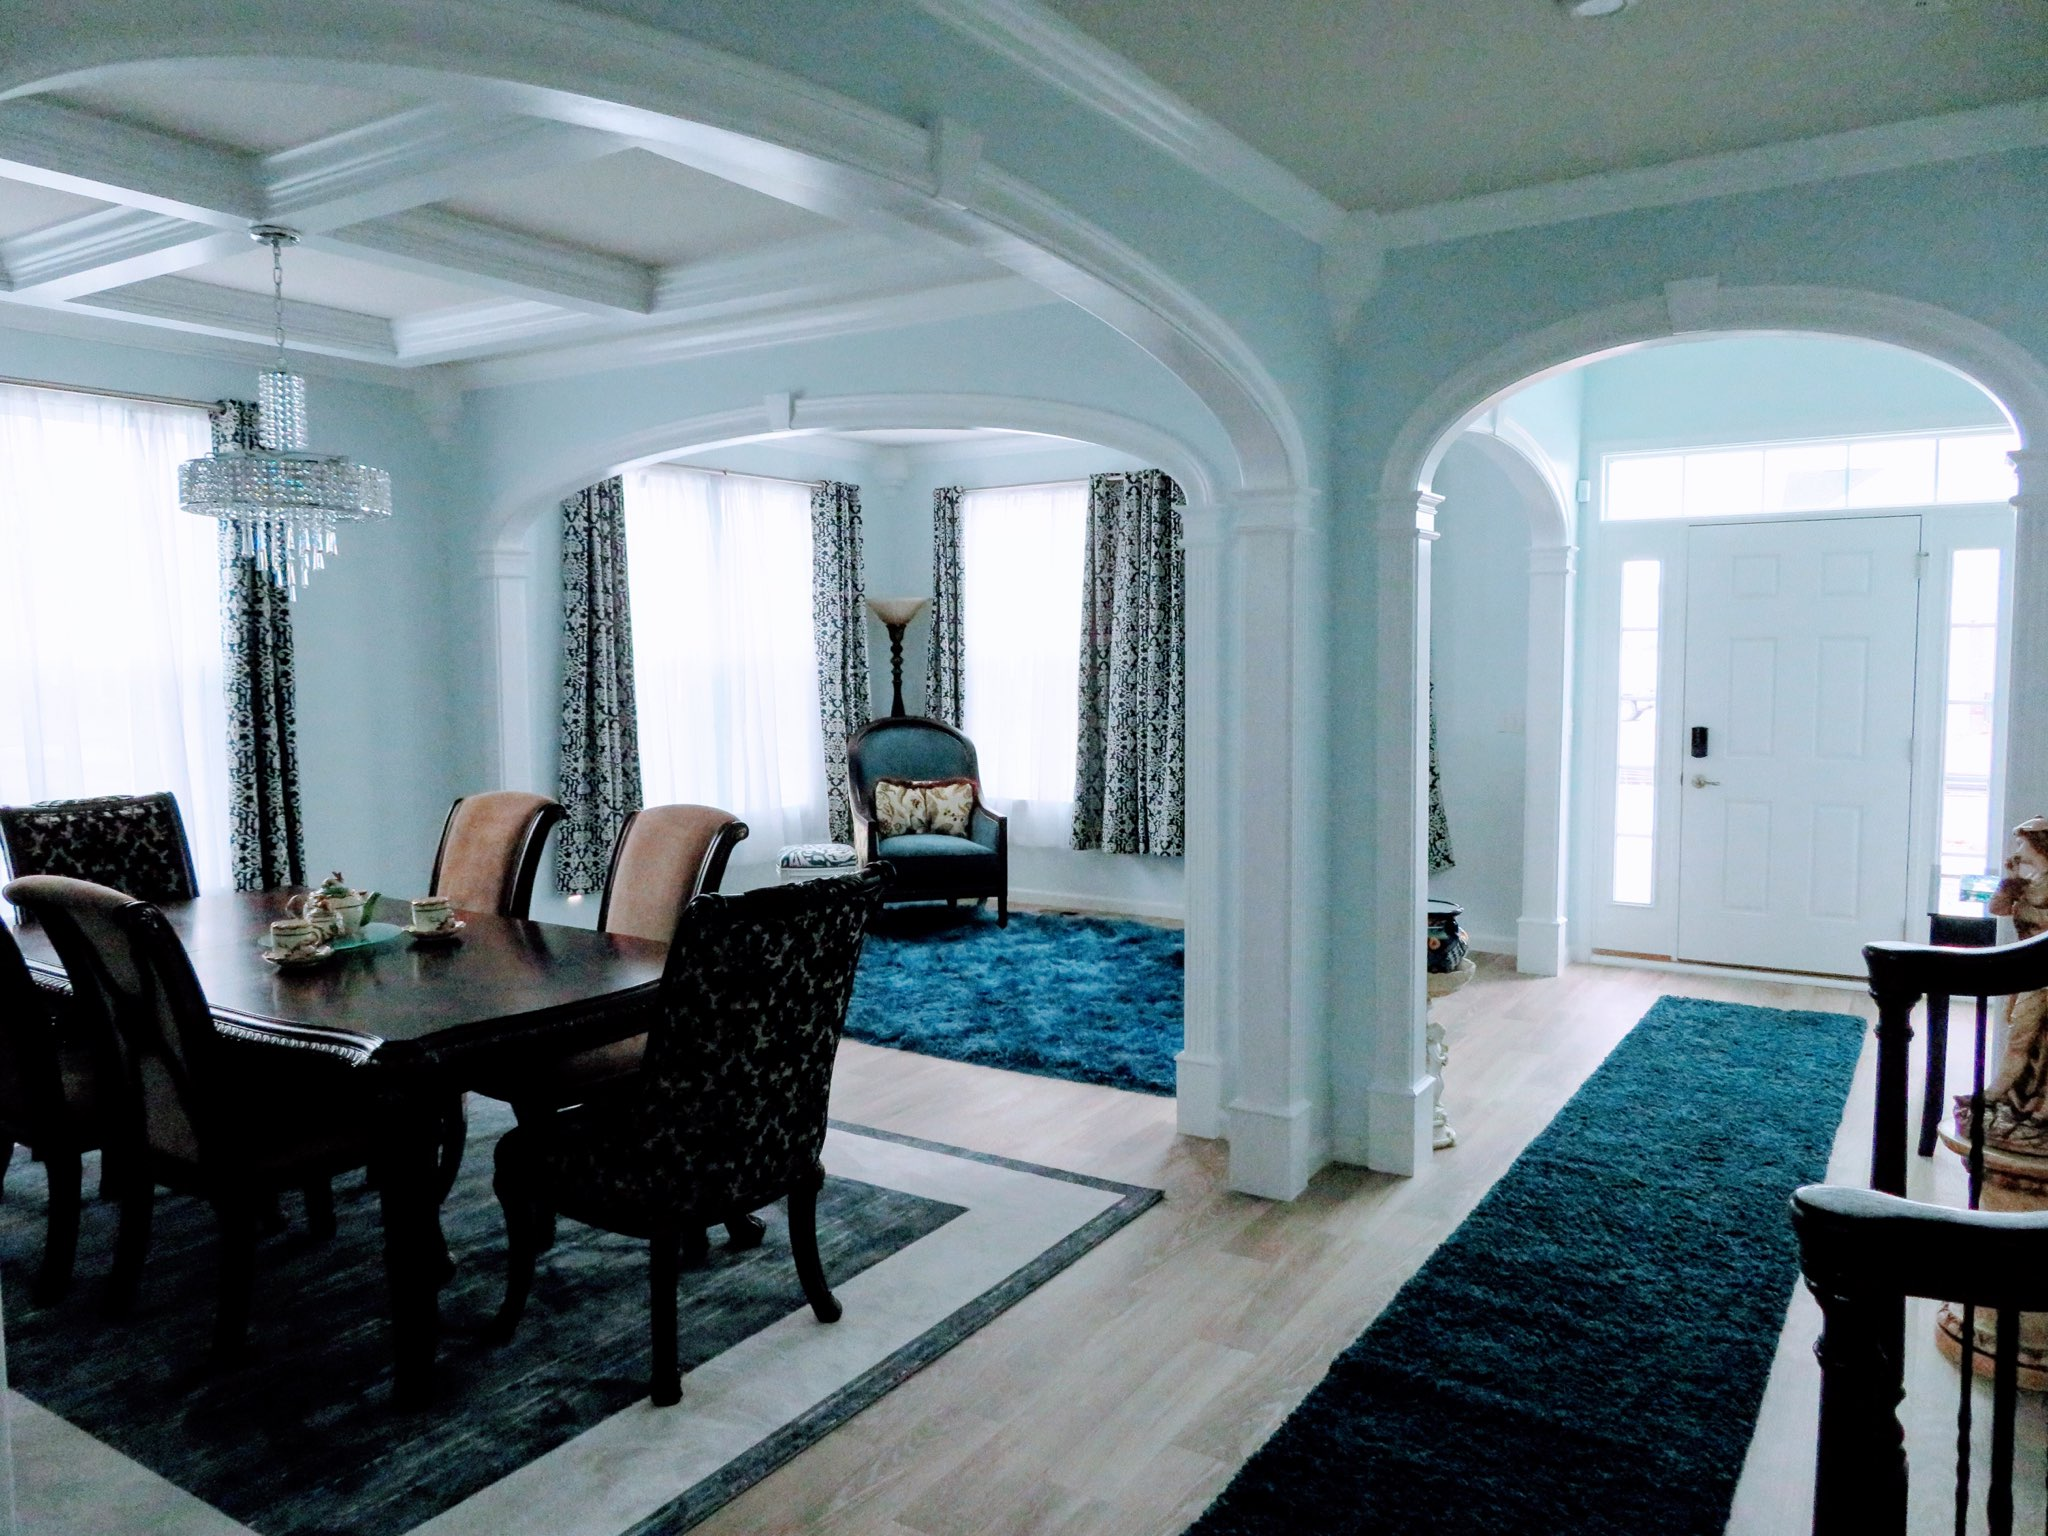 large archway in dining, foyer, living room - supersized cbs5 model